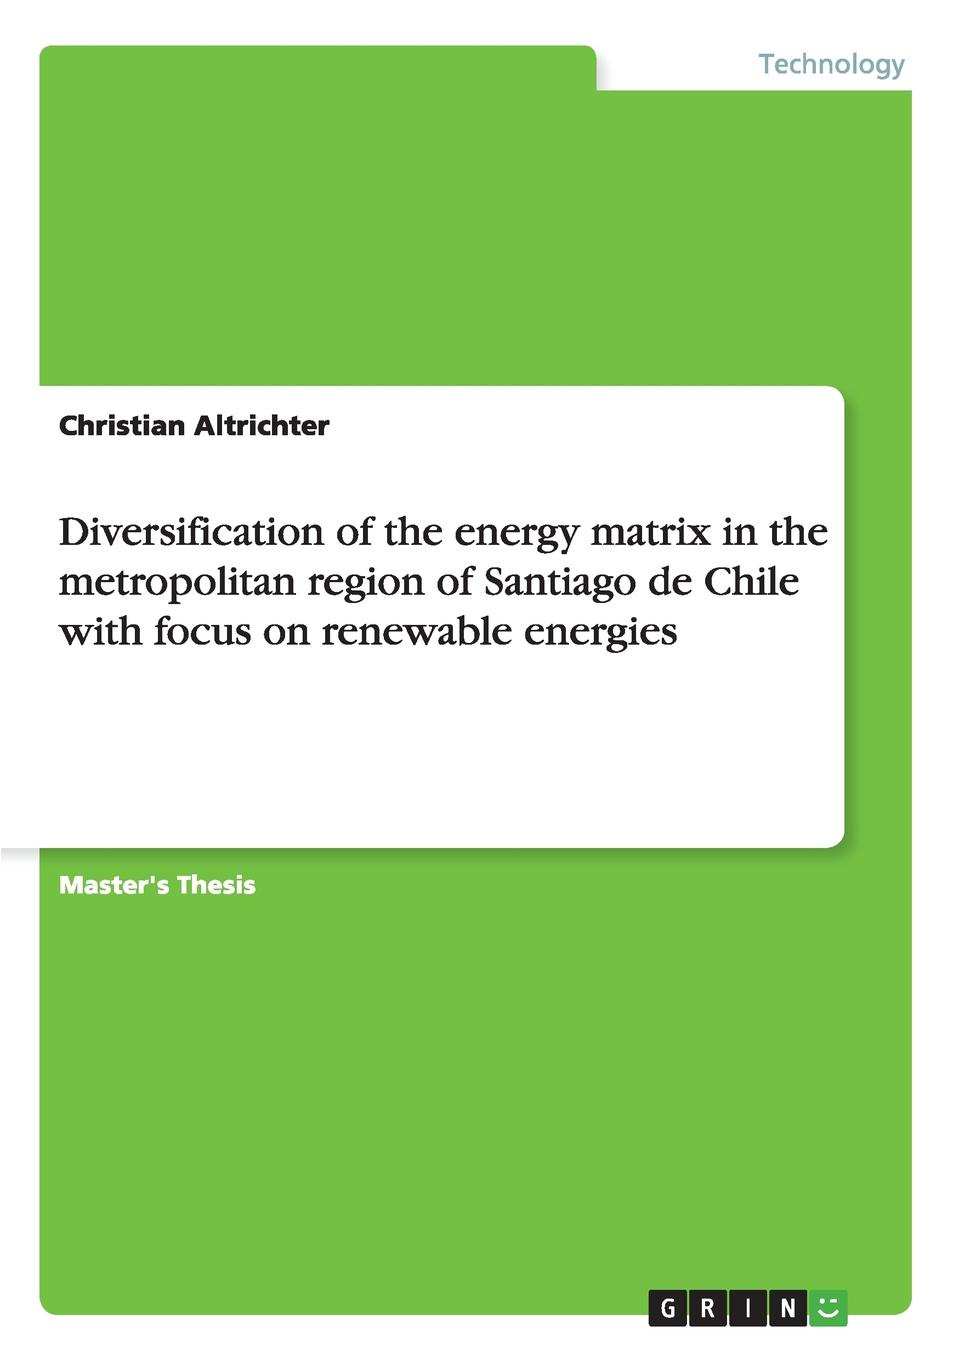 Christian Altrichter Diversification of the energy matrix in the metropolitan region of Santiago de Chile with focus on renewable energies a b m sharif hossain fazliny a rahman and siti a ahmad biotechnology for biofuel renewable and sustainable development